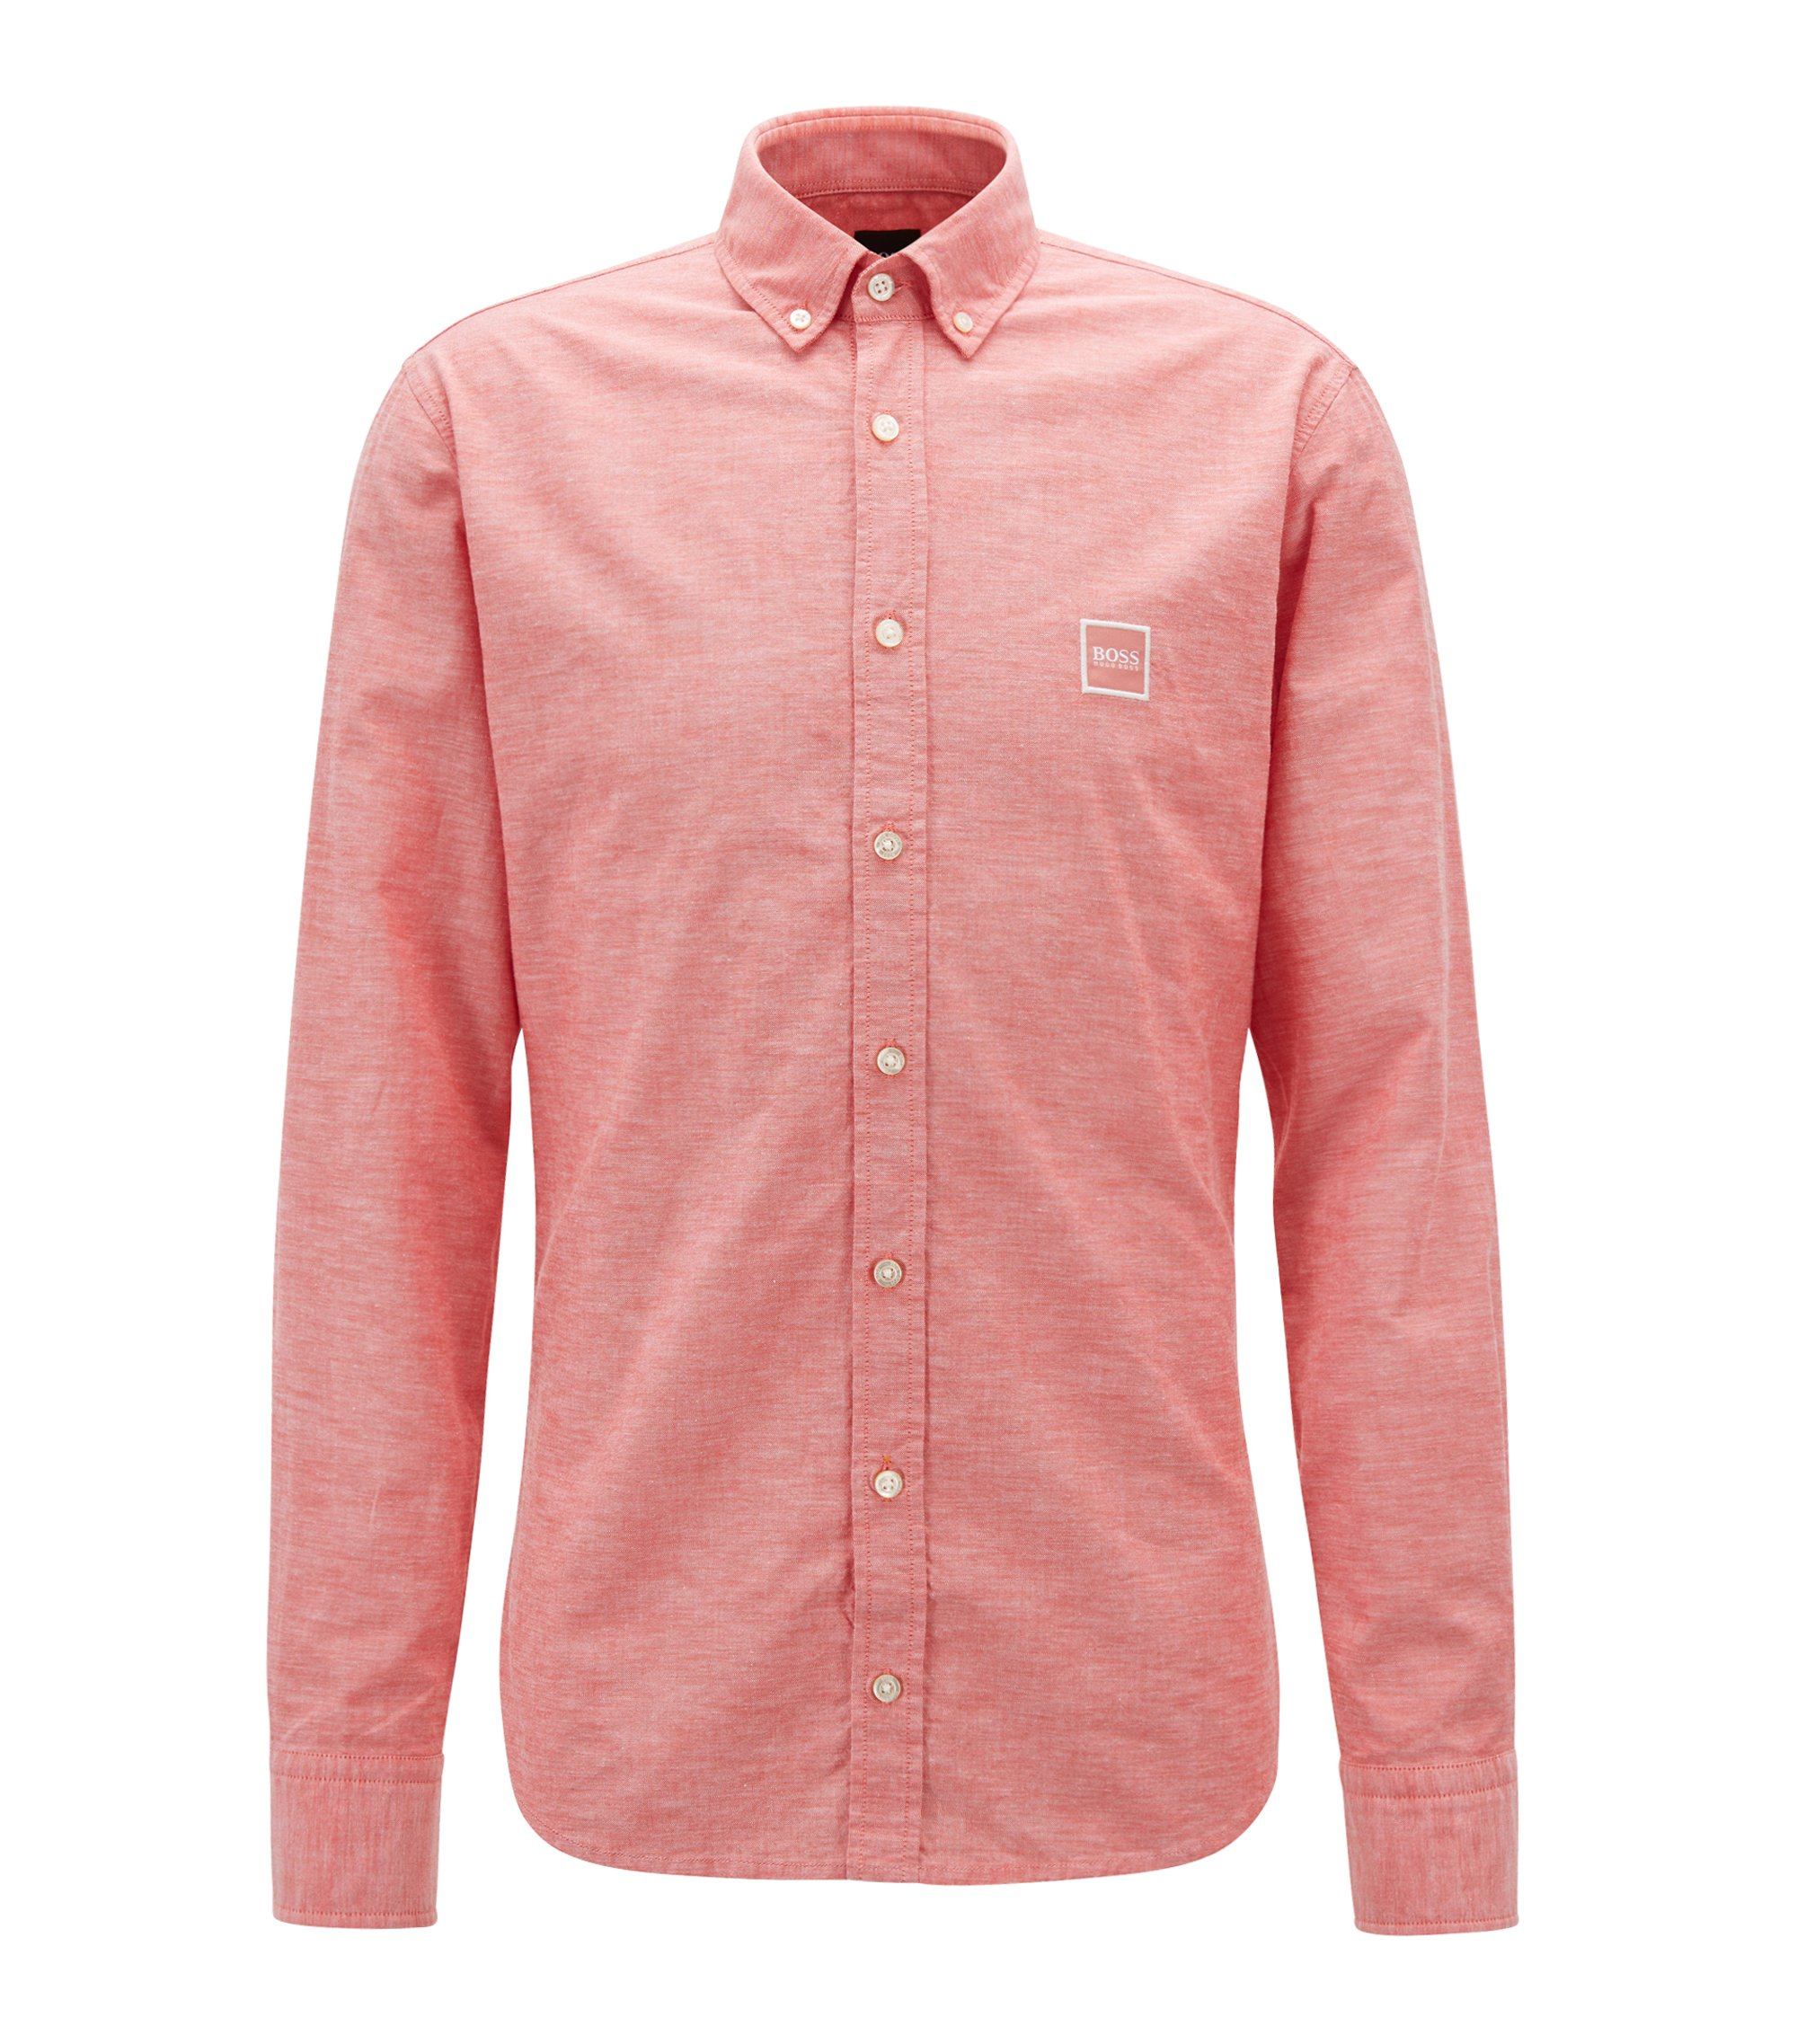 Slim-Fit Hemd aus angerauter Baumwolle mit Button-Down-Kragen, Rot